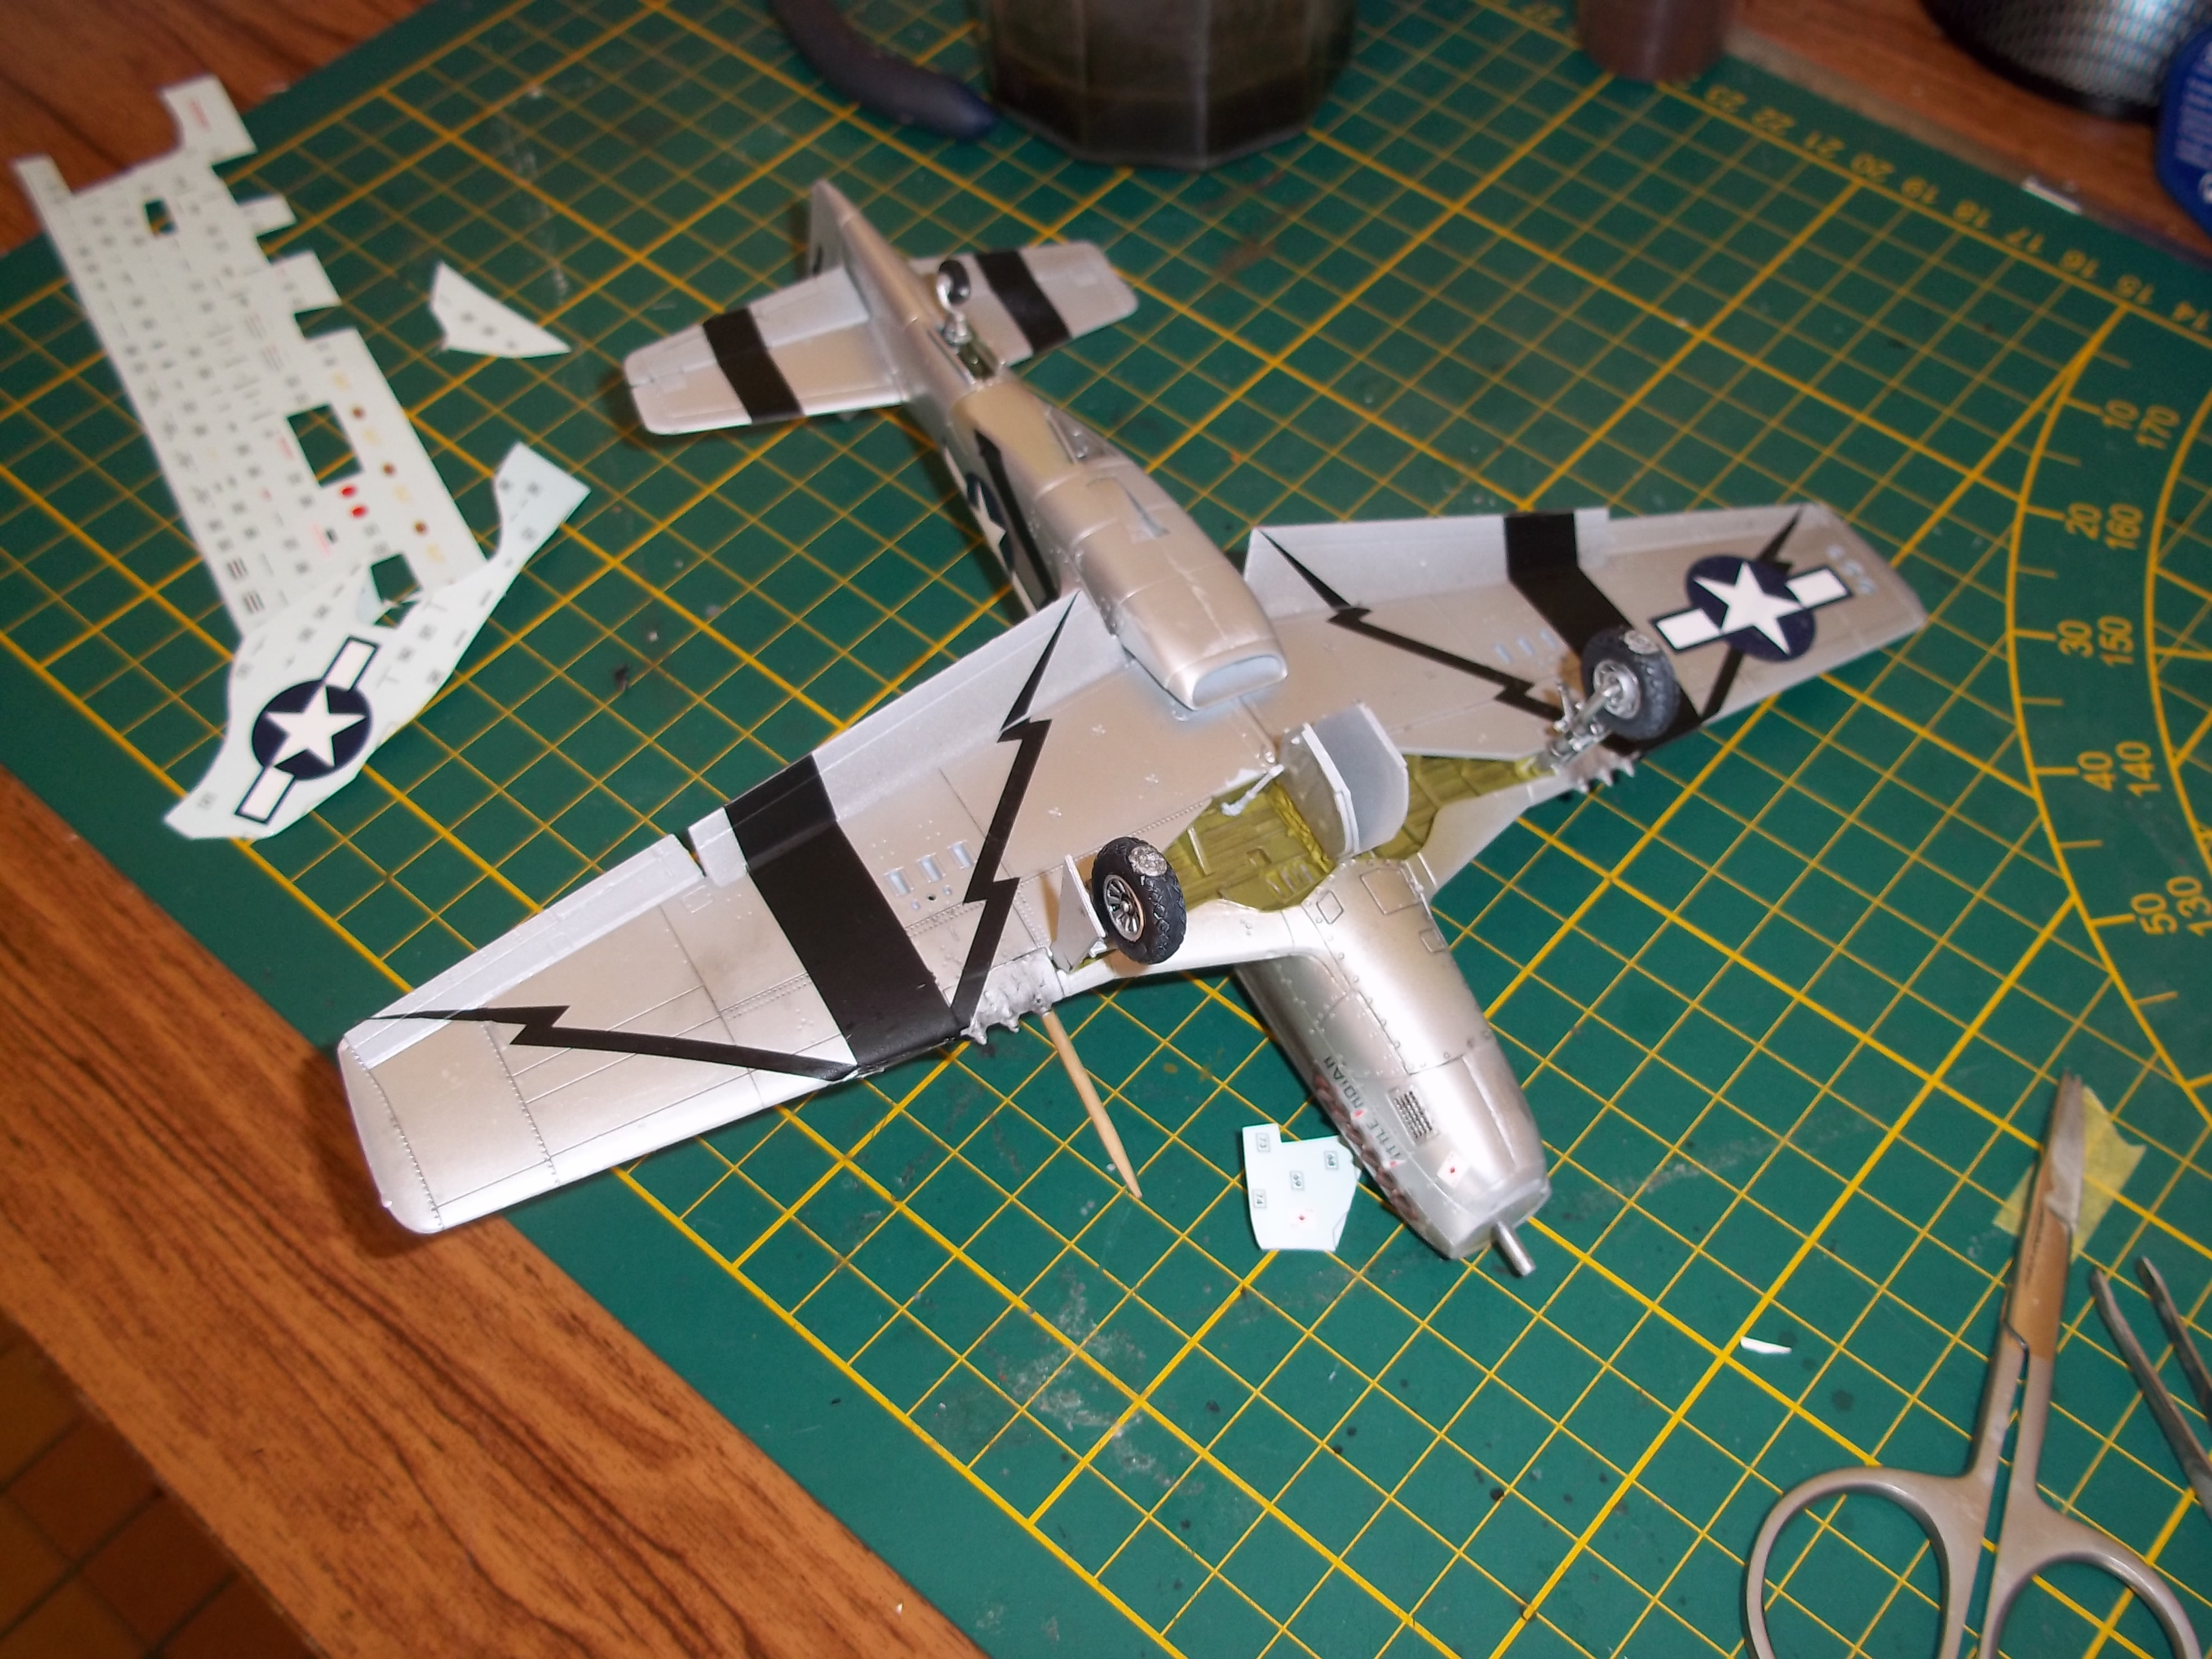 P 51D mustang 1/48 airfix  - Page 2 181010062255325895